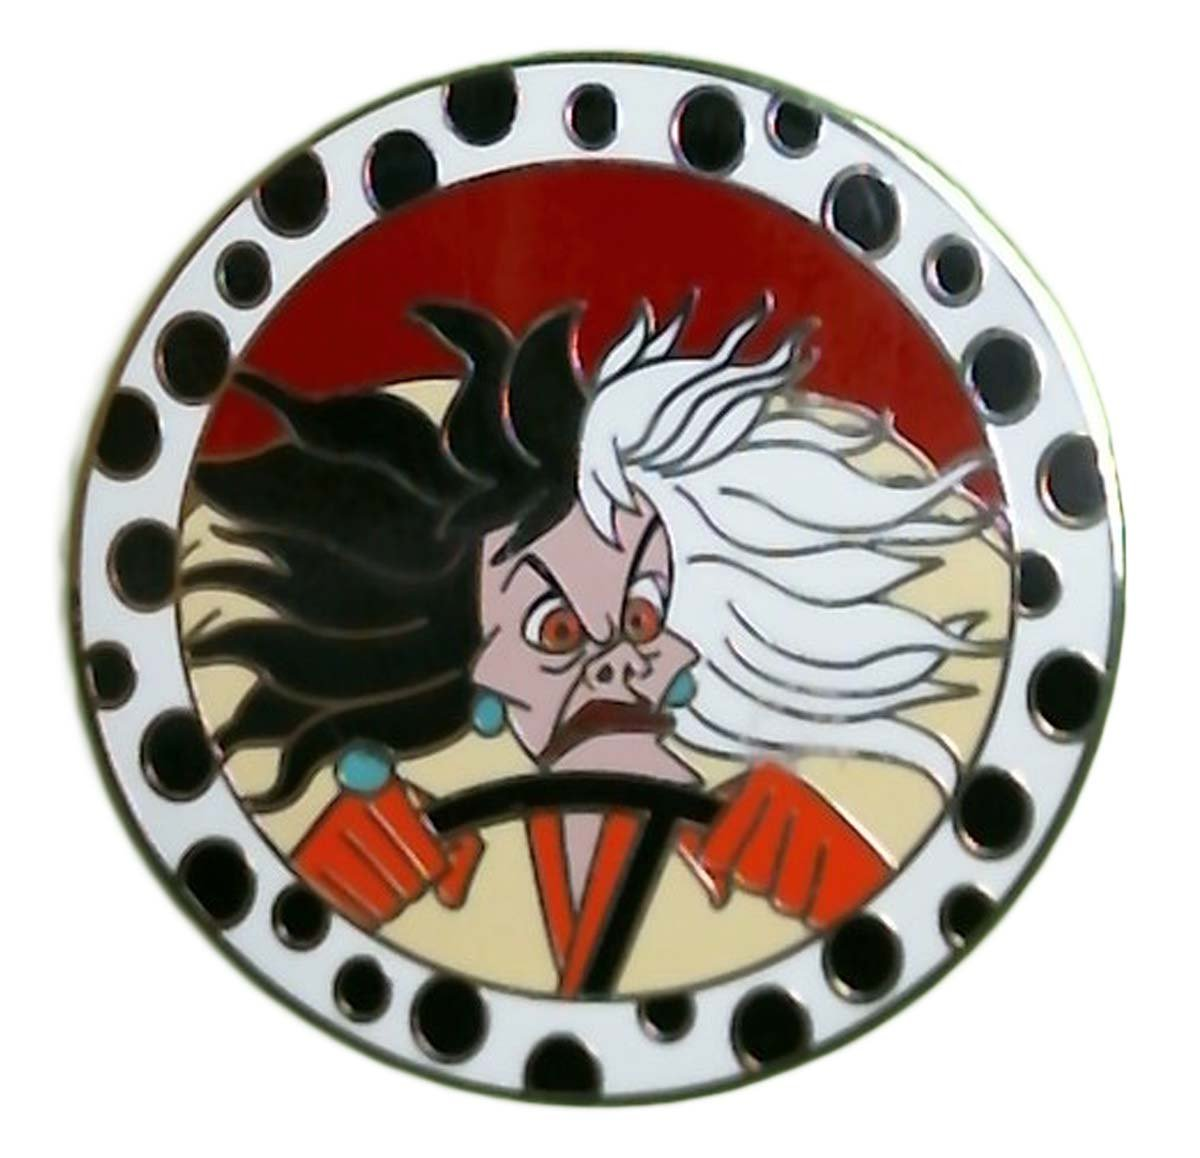 Authetic Disney CRUELLA - VILLAIN SERIES - DALMATIANS New on Card Trading Pin by HuiLin Jewelry (Image #1)